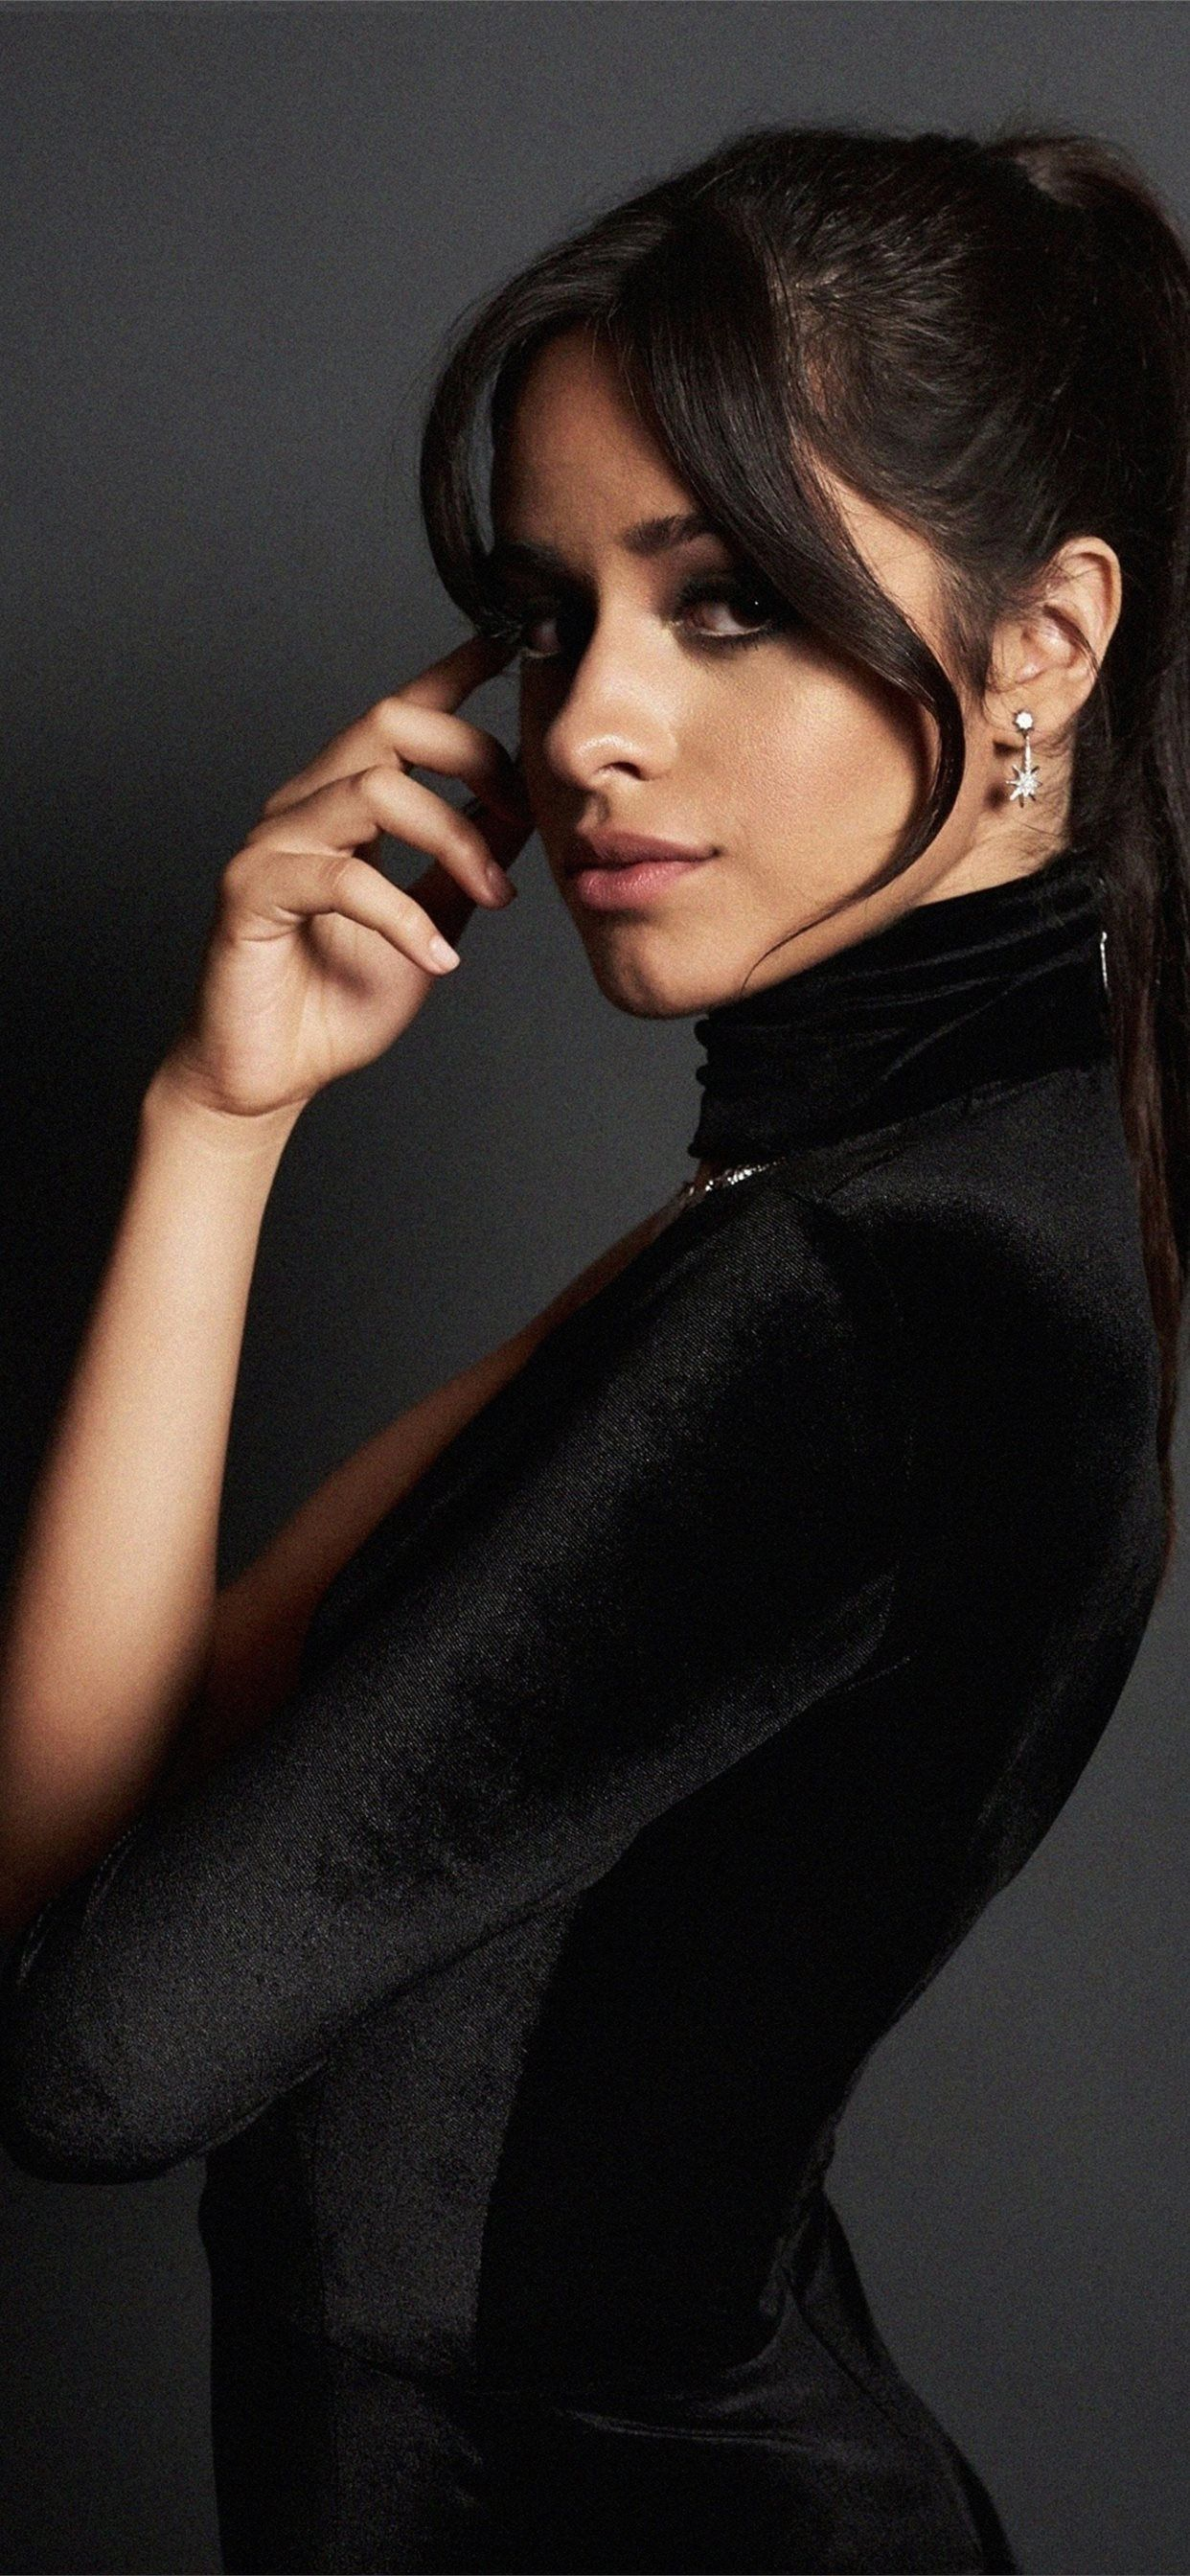 Camila Cabello Iphone Wallpapers Top Free Camila Cabello Iphone Backgrounds Wallpaperaccess